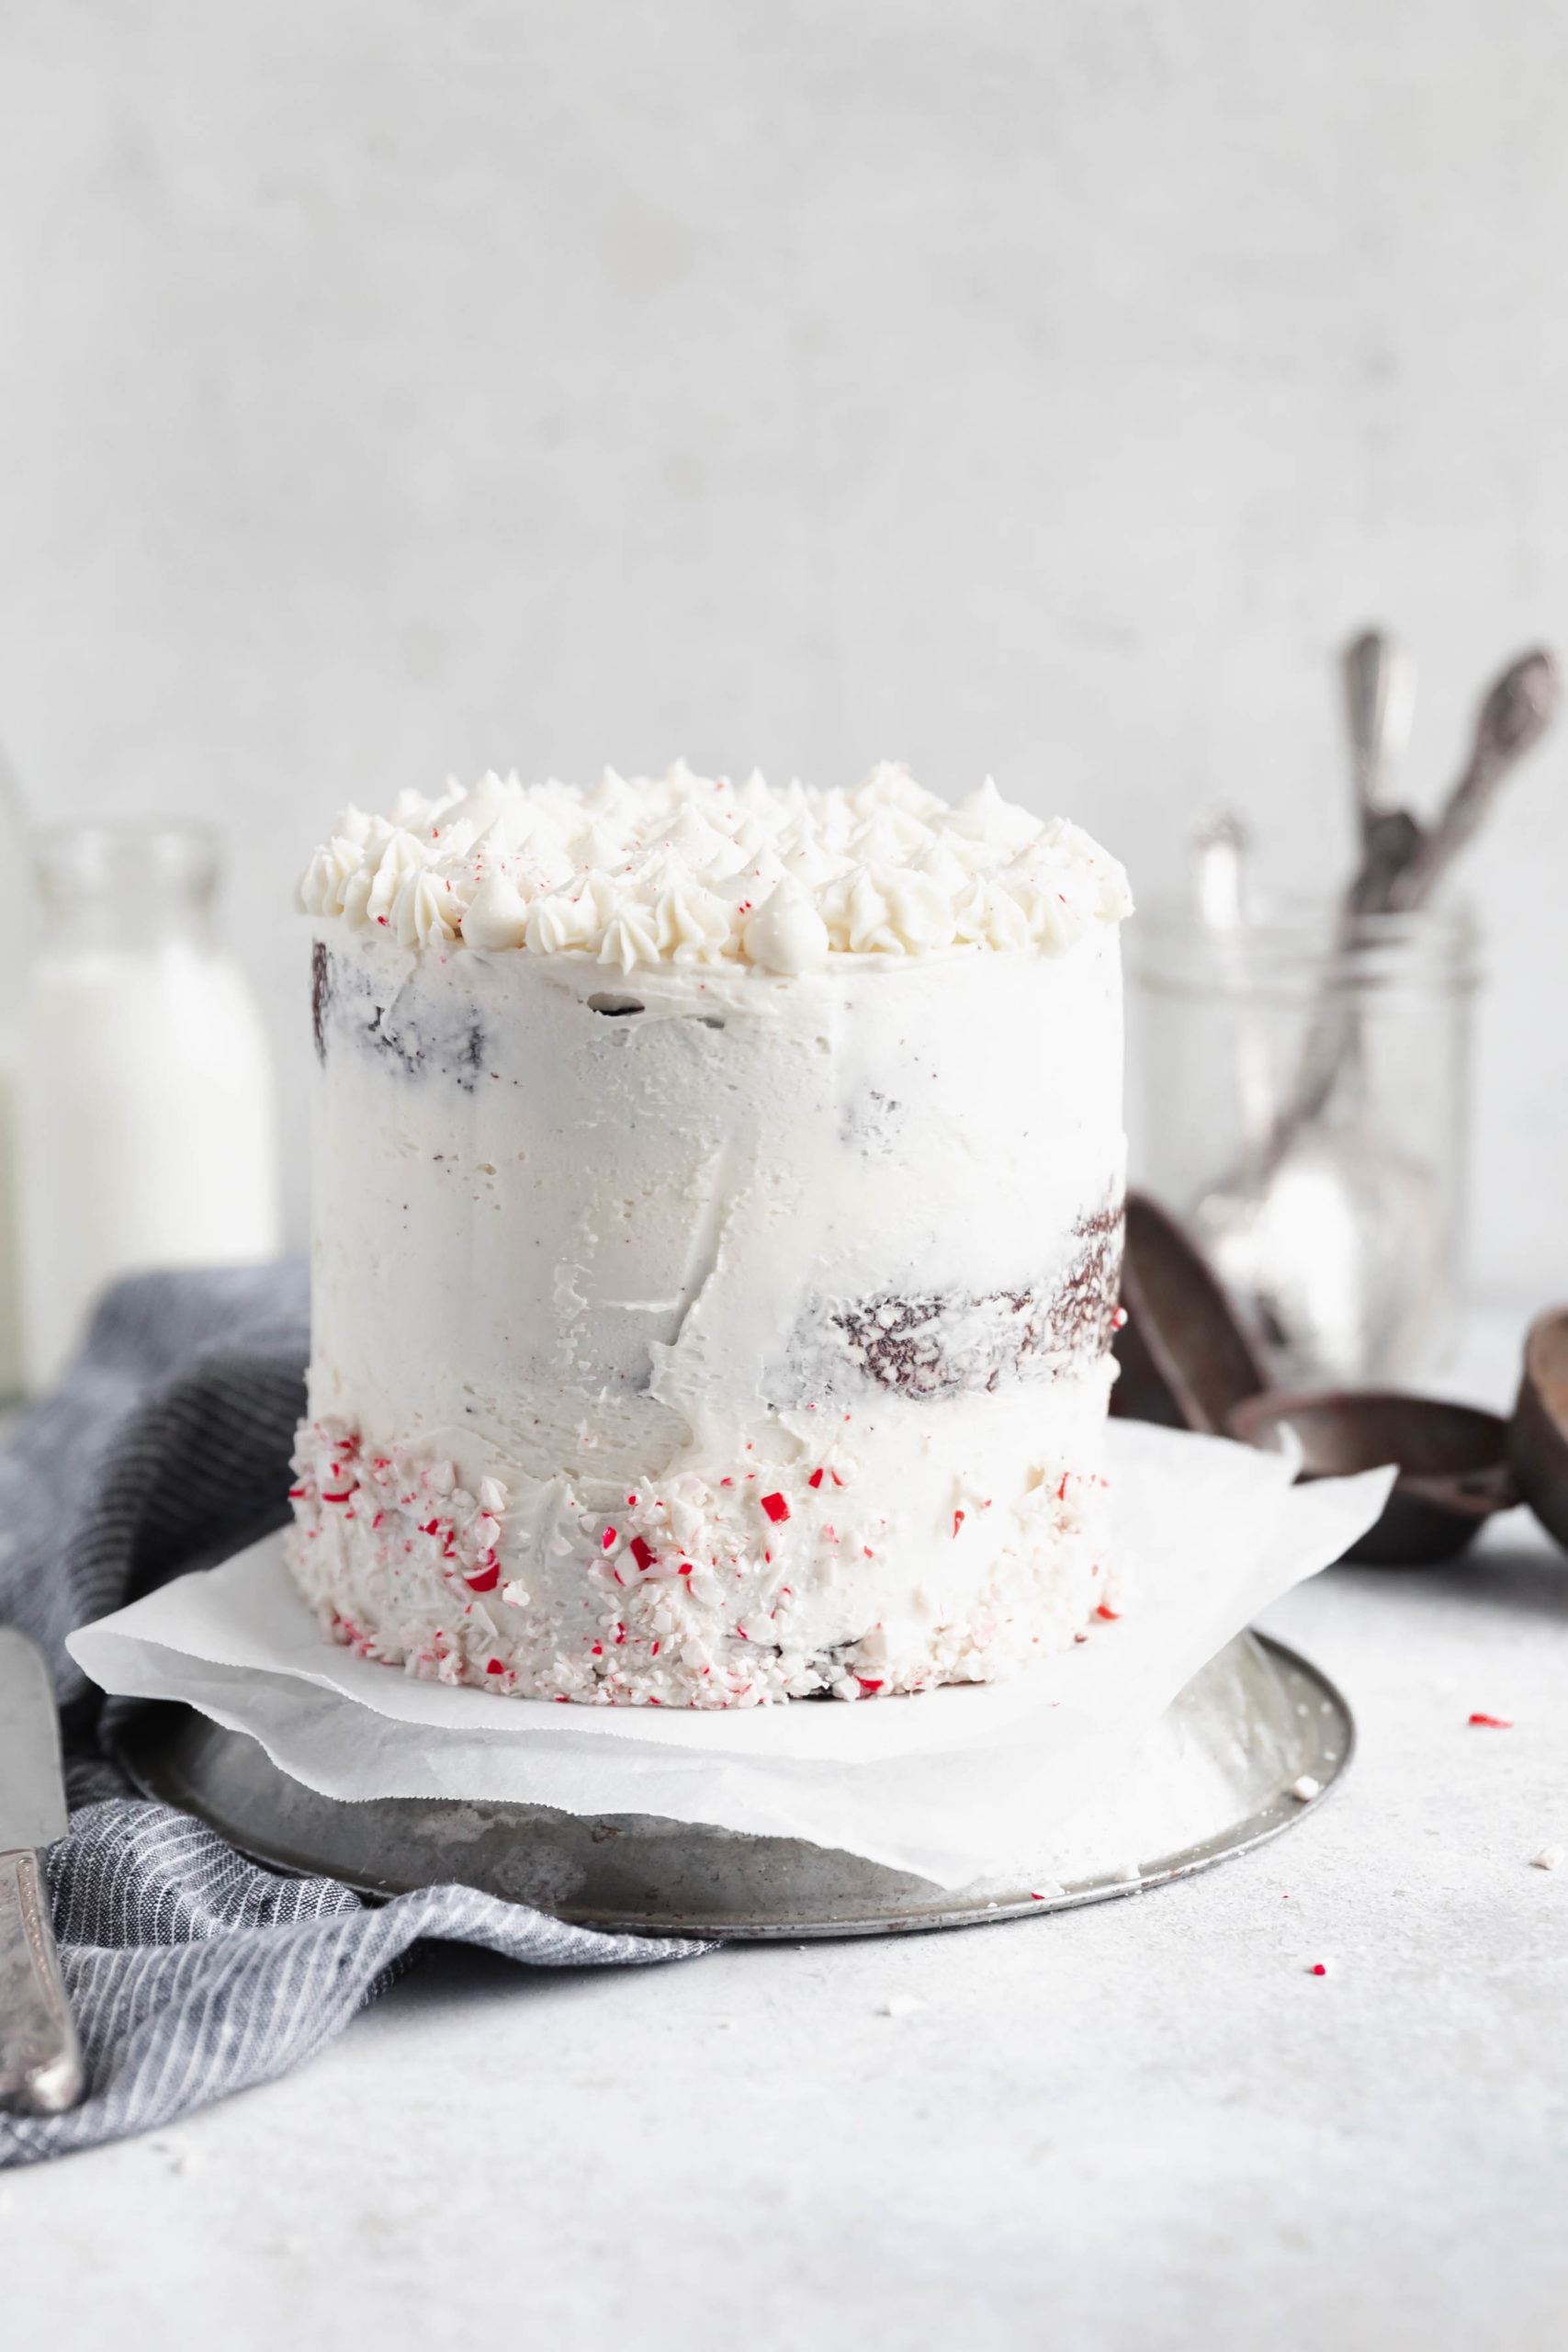 peppermint chocolate cake with crushed peppermint decoration